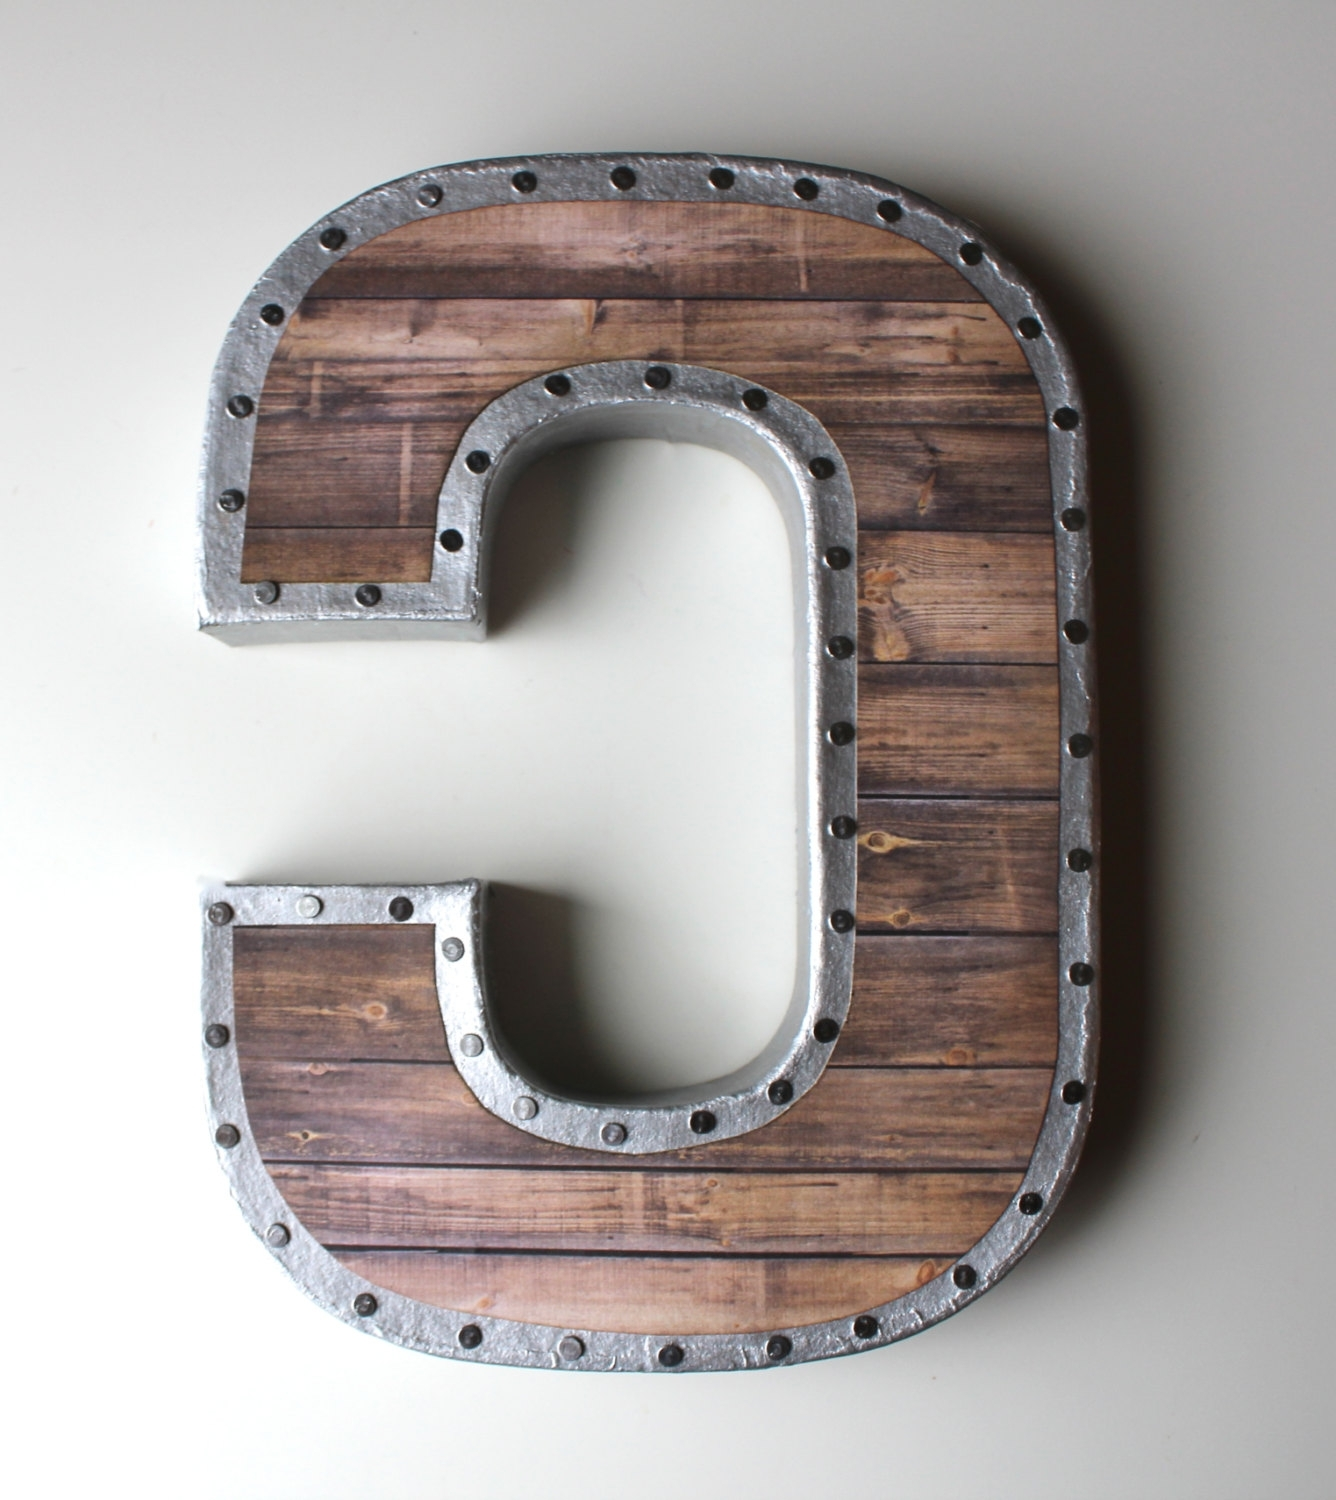 Vintage Metal Letters For The Wall – Blogtipsworld For Trendy Metal Letter Wall Art (View 4 of 20)